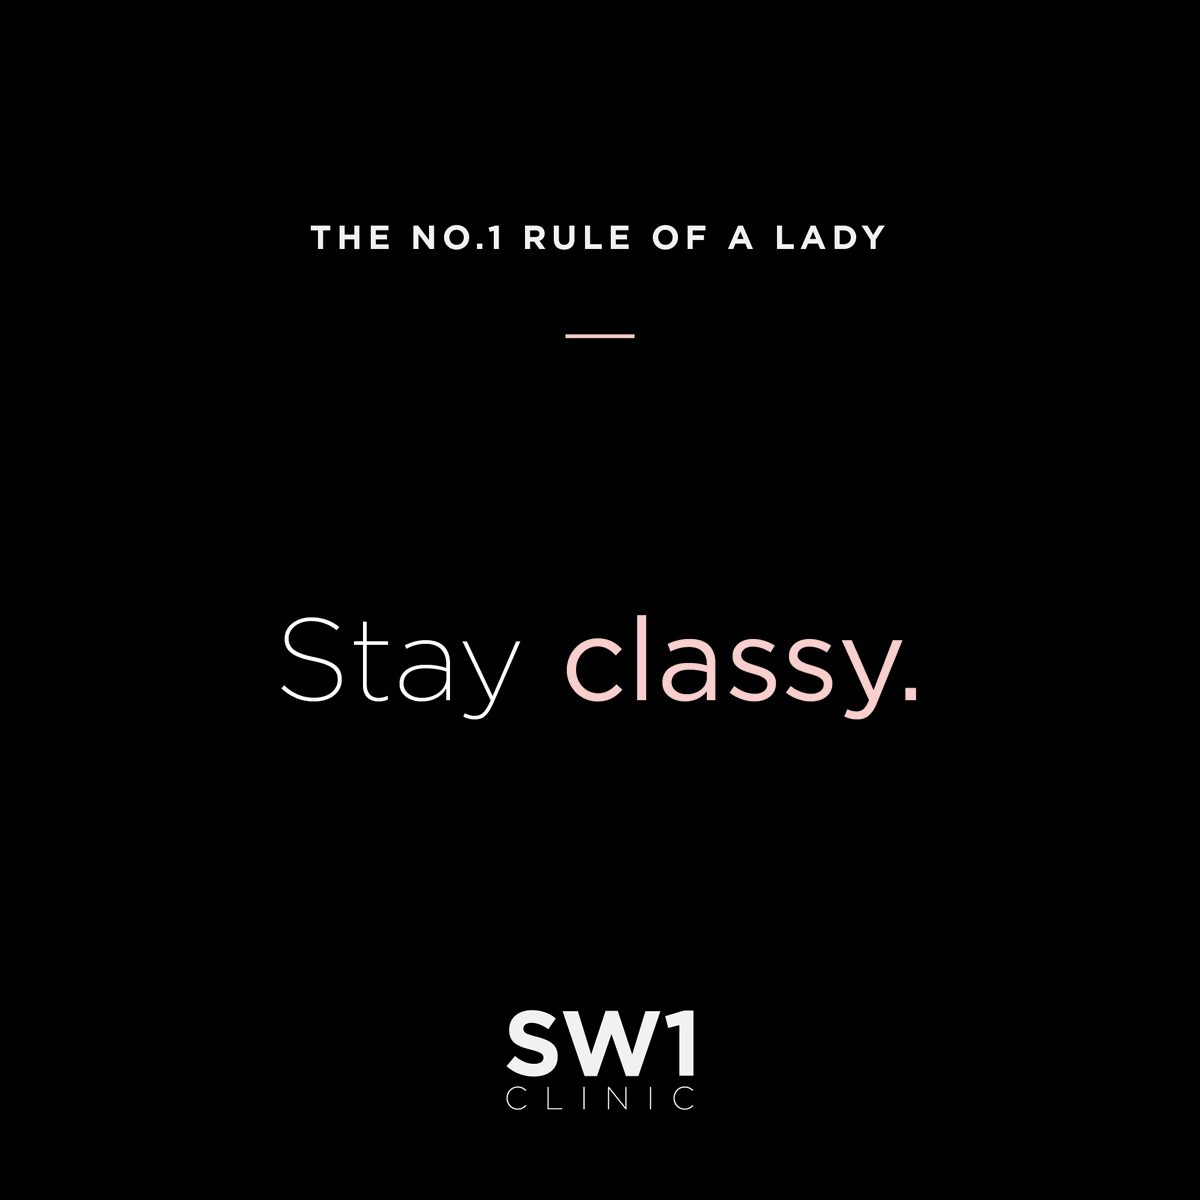 Stay classy, sassy, and a little bad assy.   #SW1clinic #LiveYourDream #AestheticClinicpic.twitter.com/WI1r4Vswyq